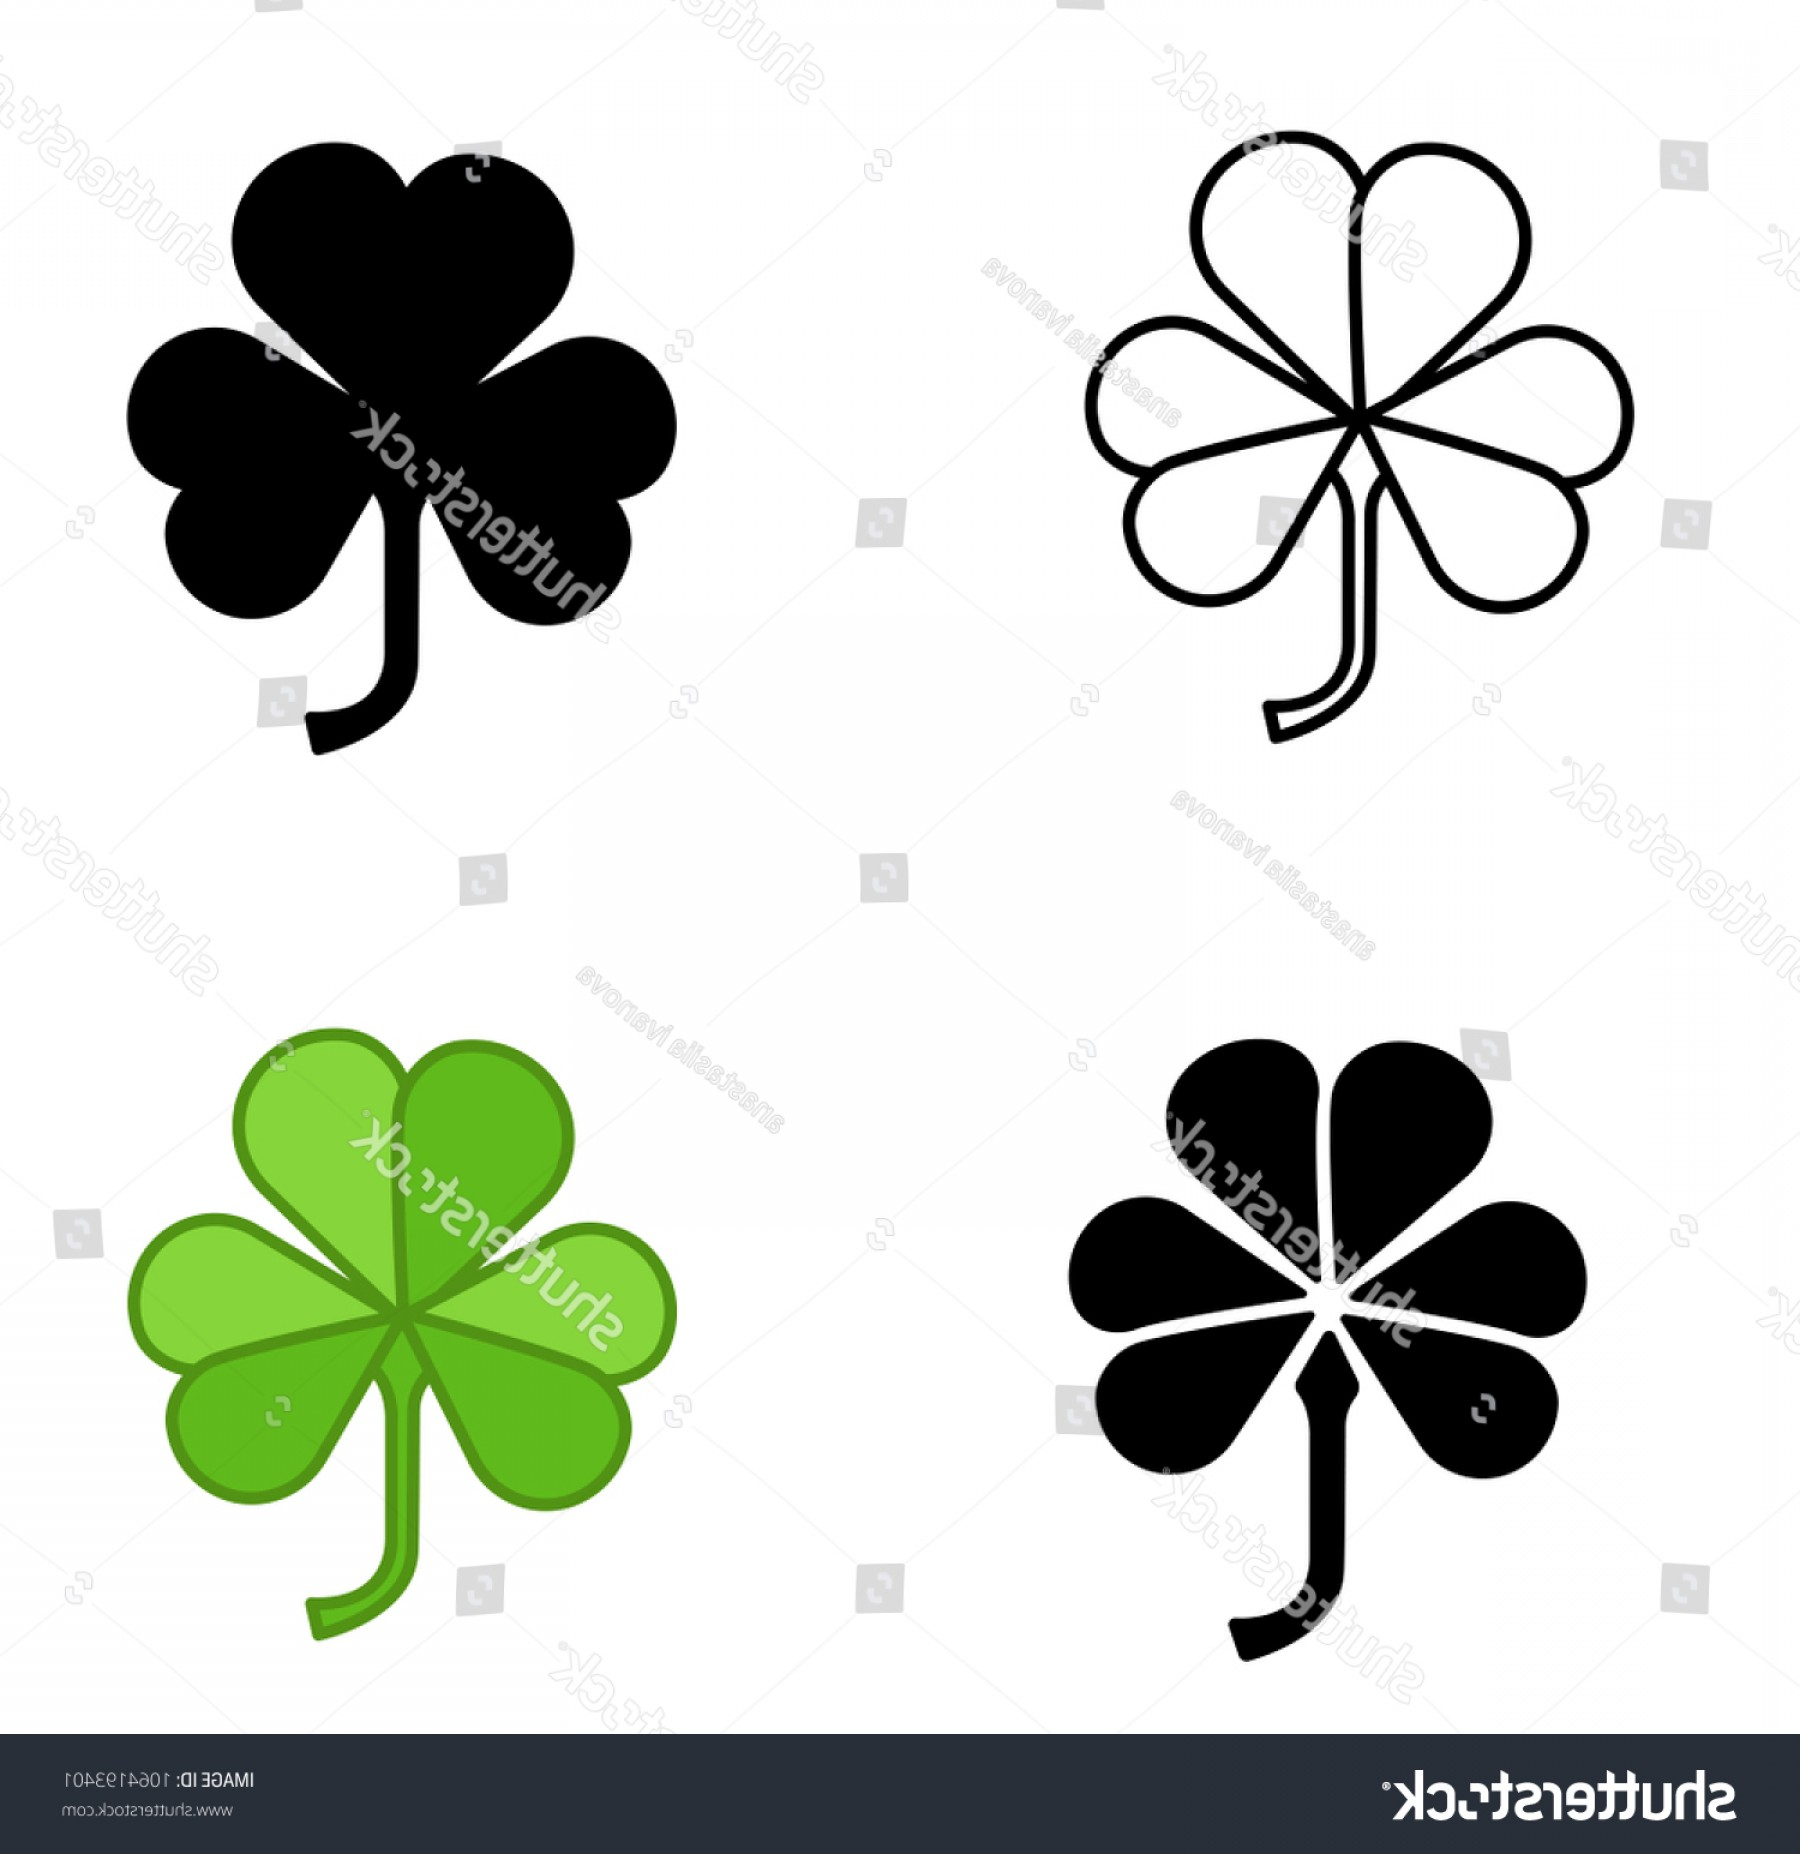 Four Leaf Clover Vector Art Black And White: Shamrock Vector Icon Trefoil Art Setshamrock